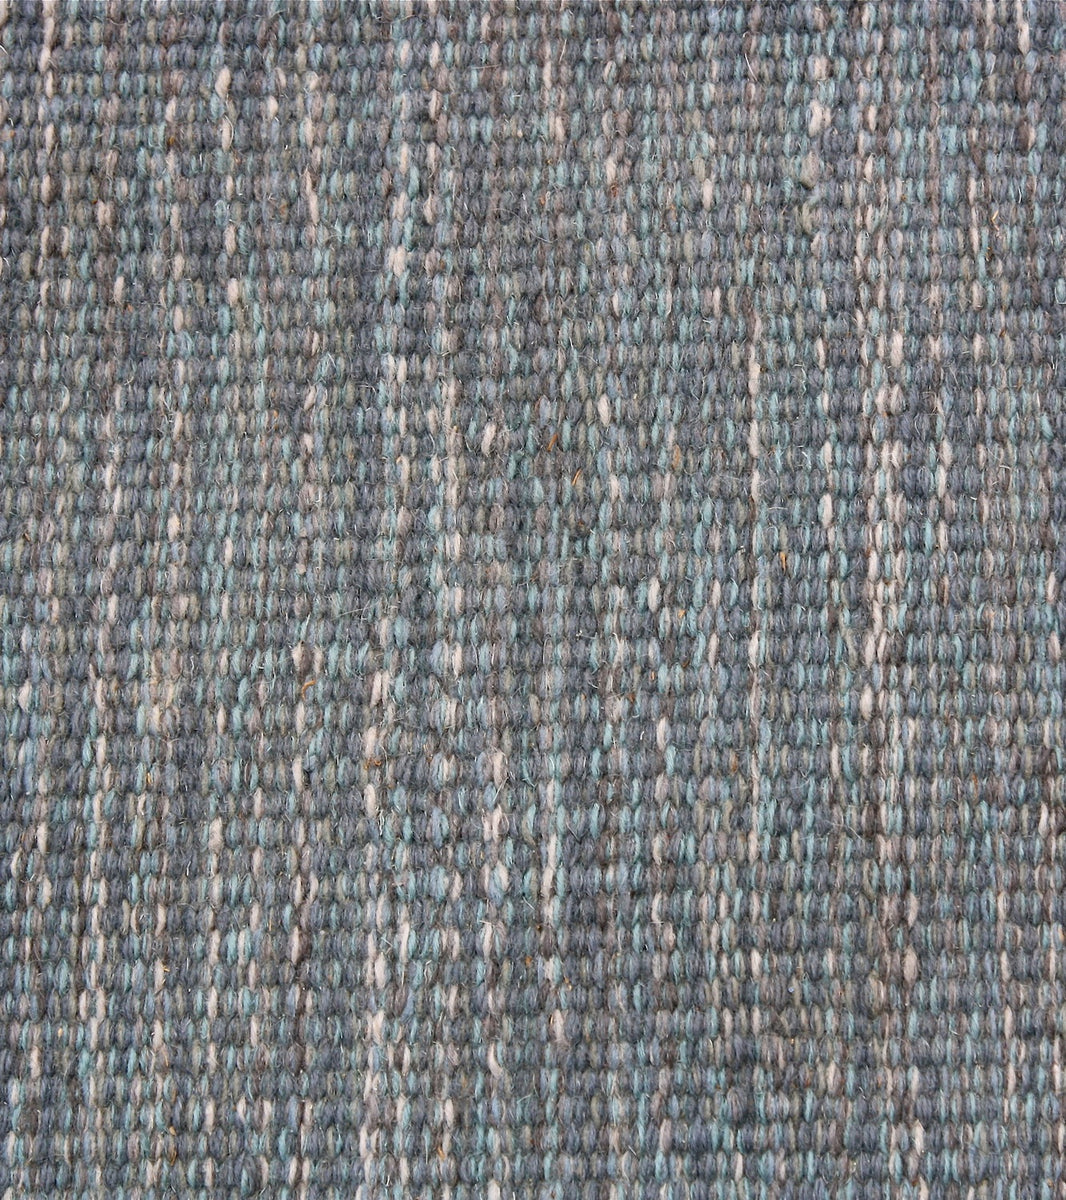 Medium Rug #1 Mai Wellner - Image 6 detailed colour image scandinavian modern rug handmade original